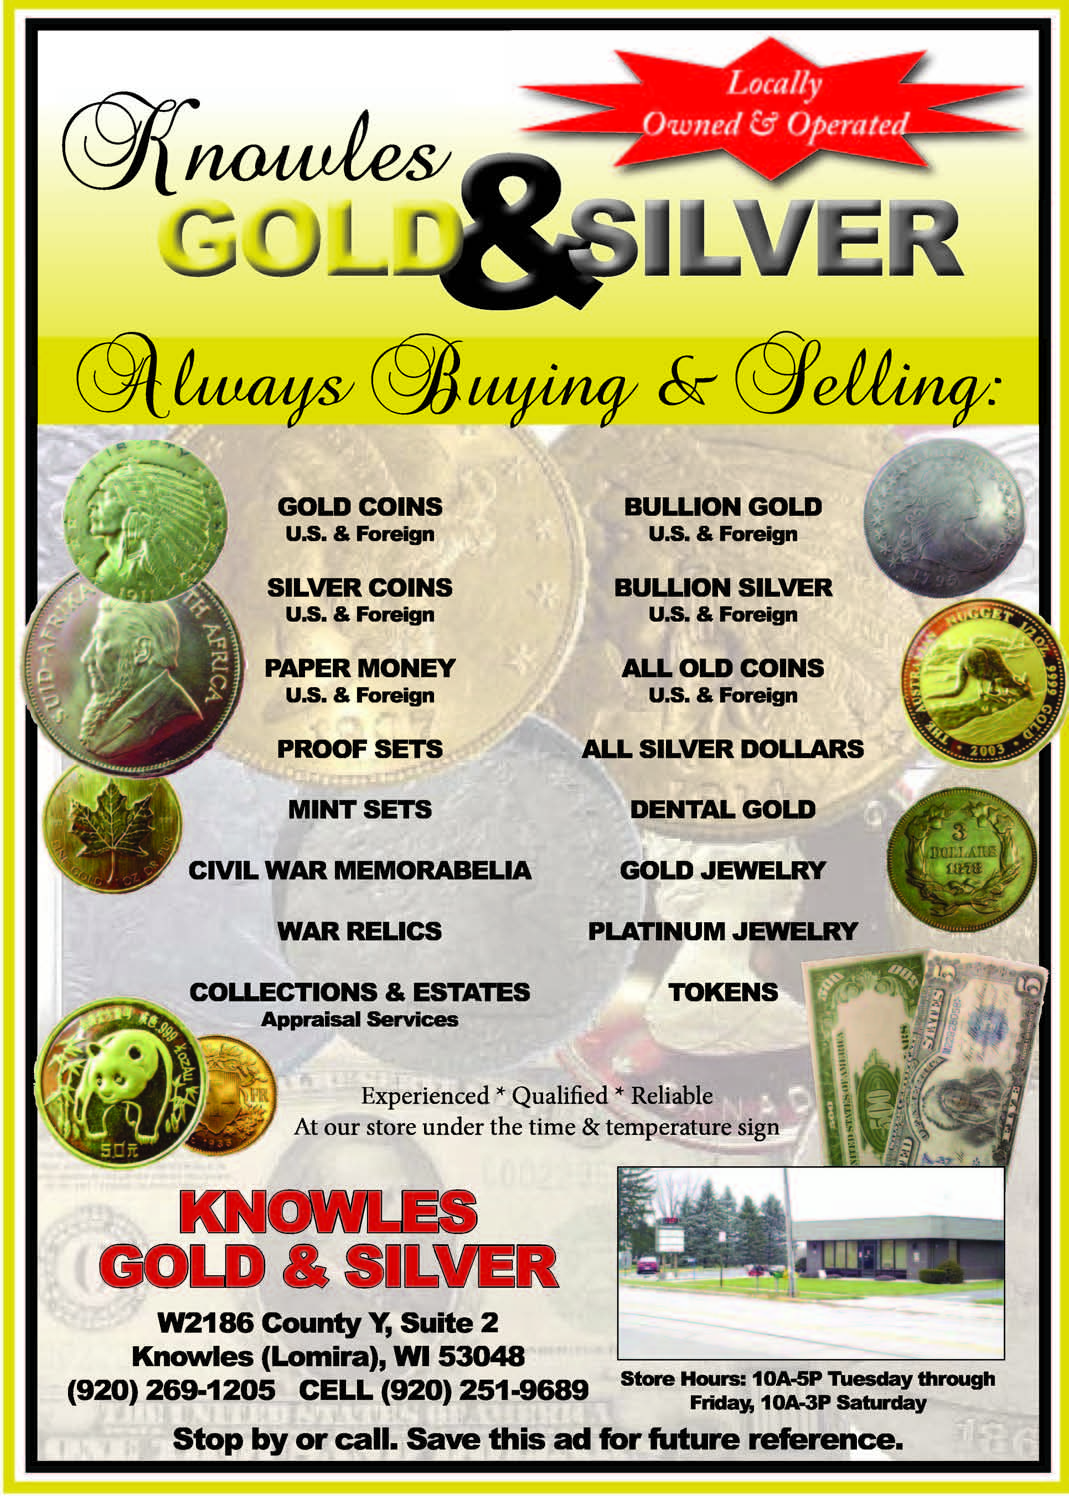 KnowlesGold&Silver